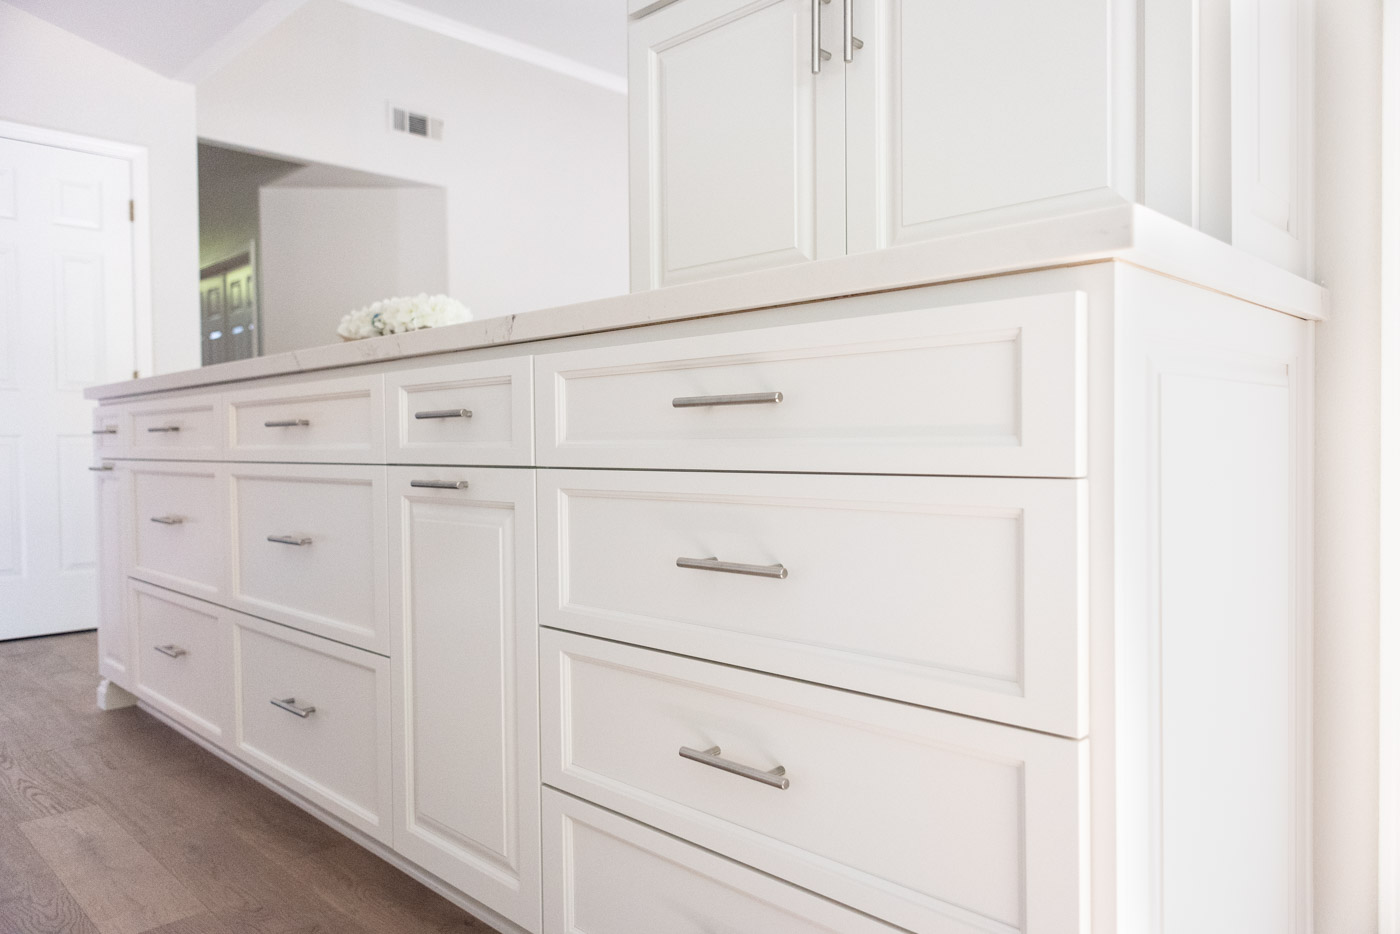 Choosing The Perfect Kitchen Cabinet Hardware Sligh Cabinets Inc